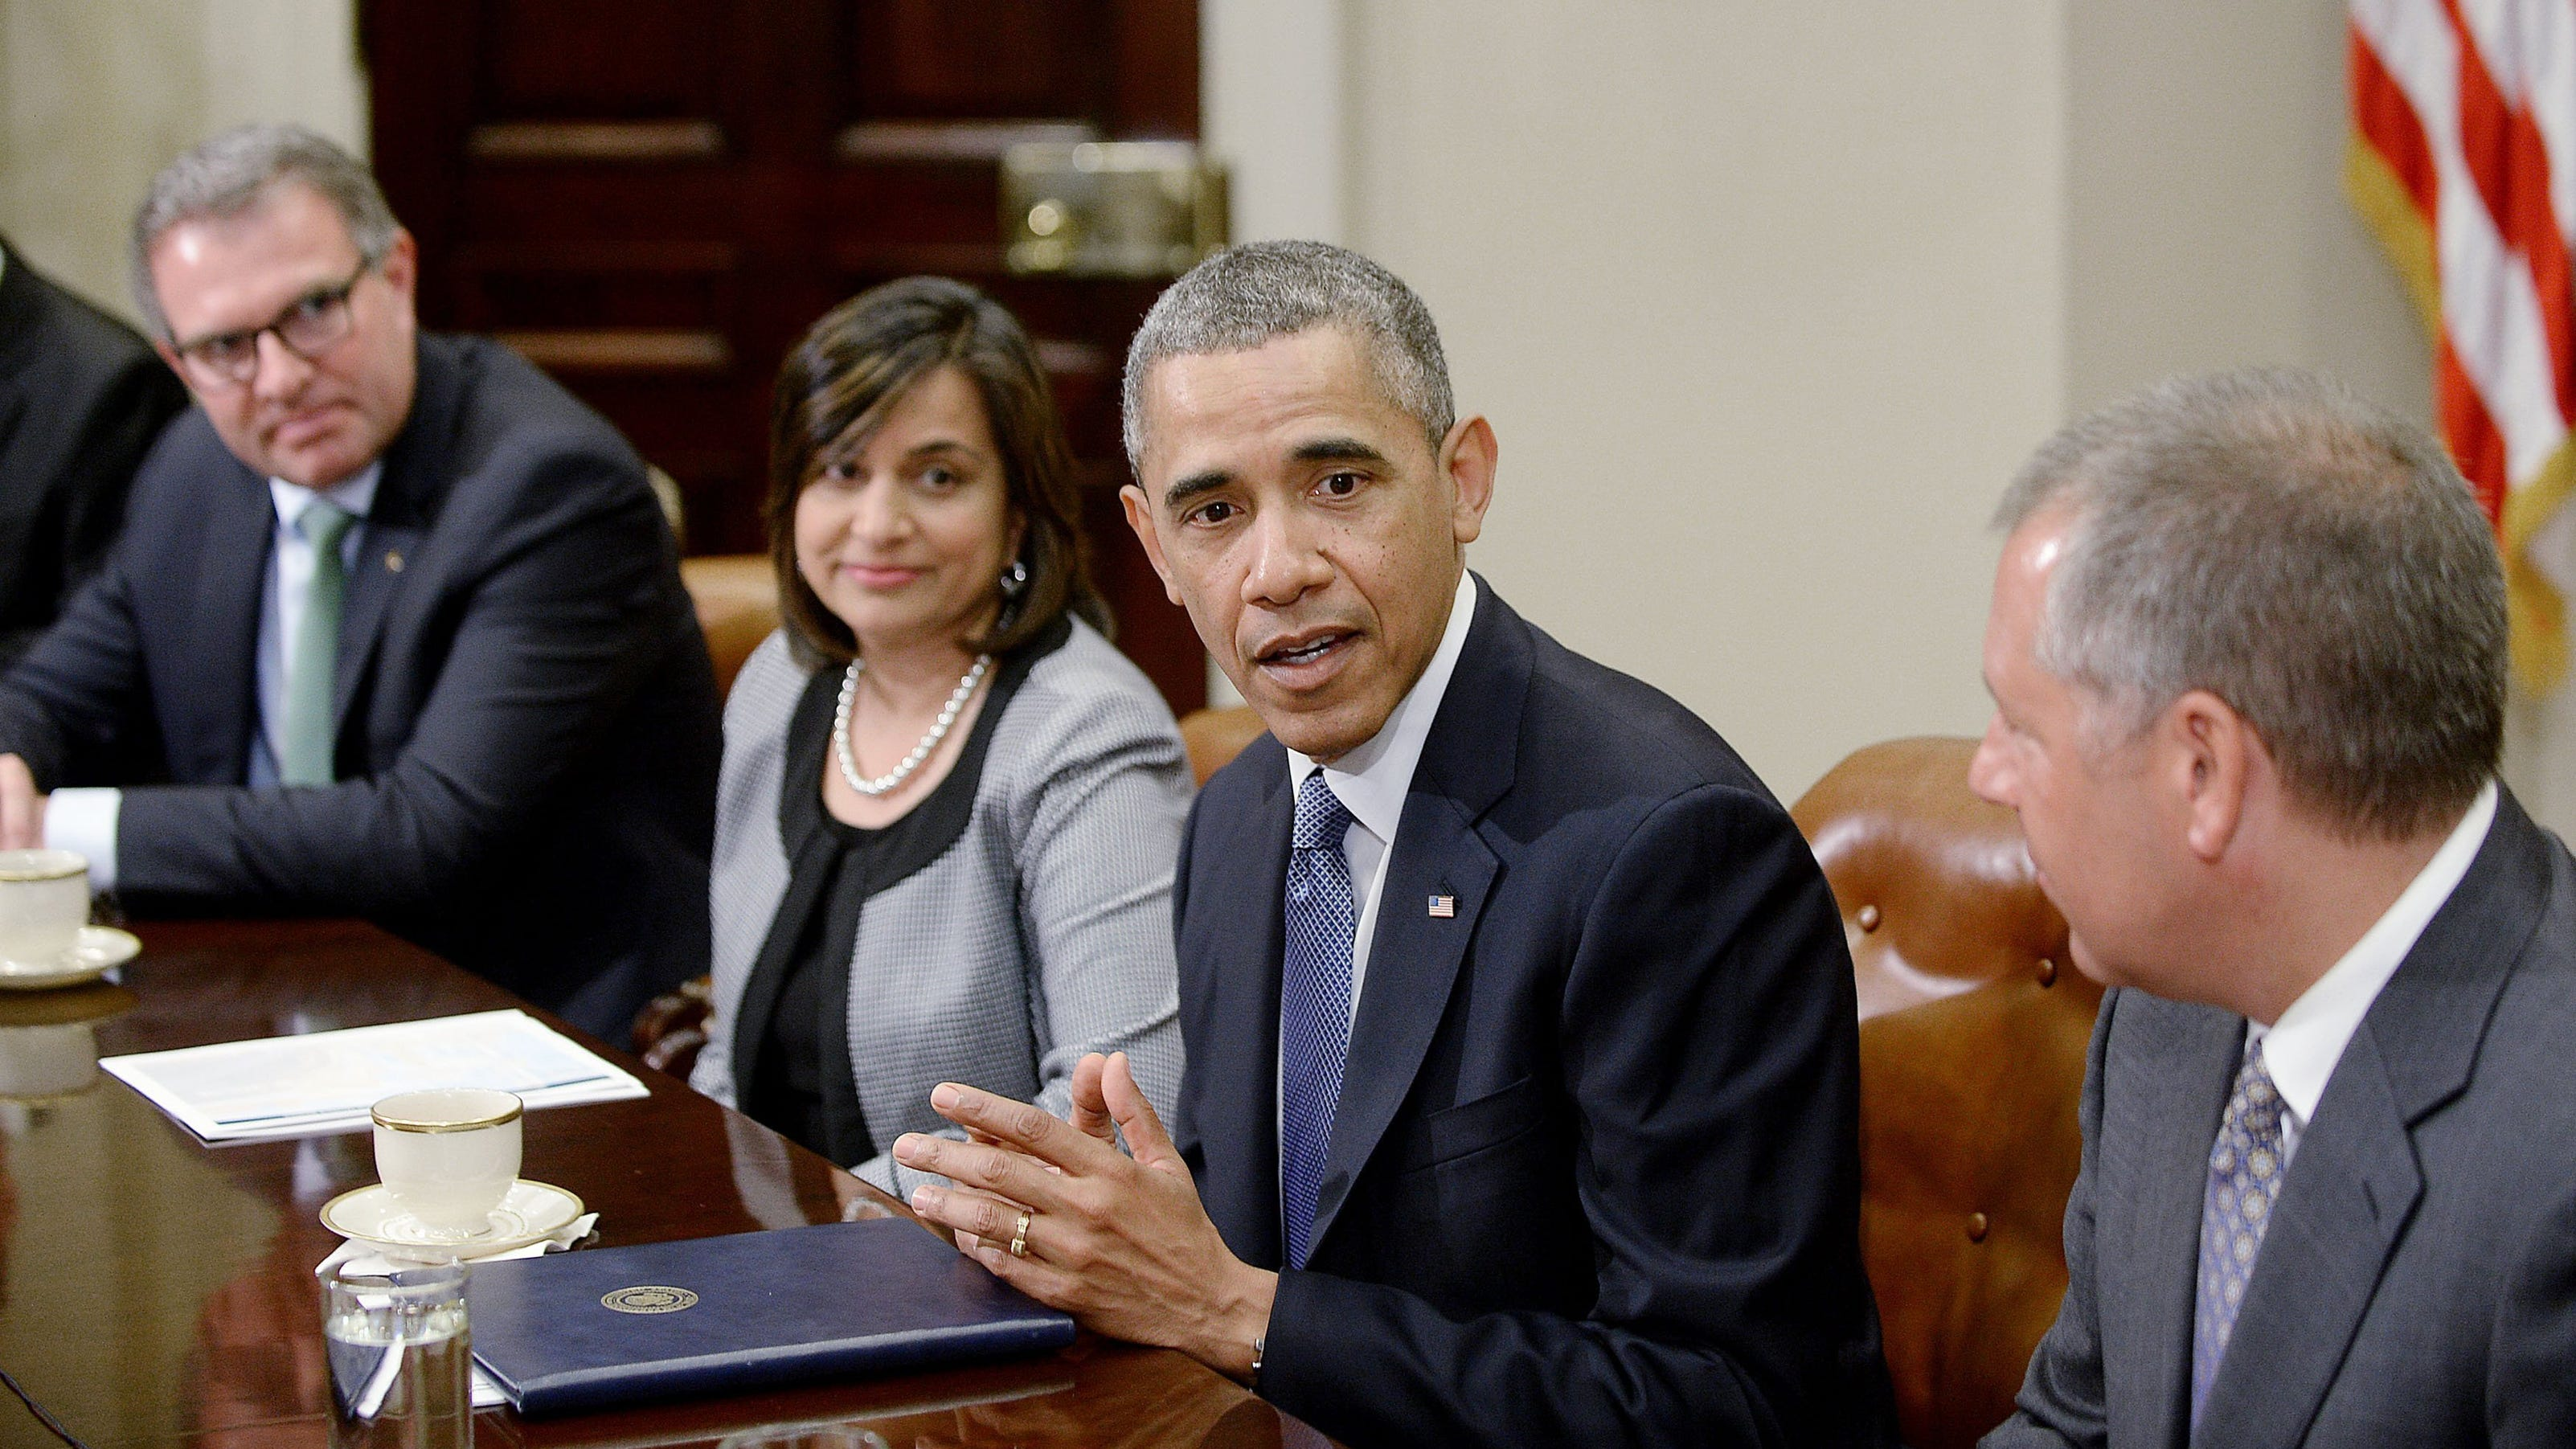 In Obama White House No One Is Held Responsible For Mistakes